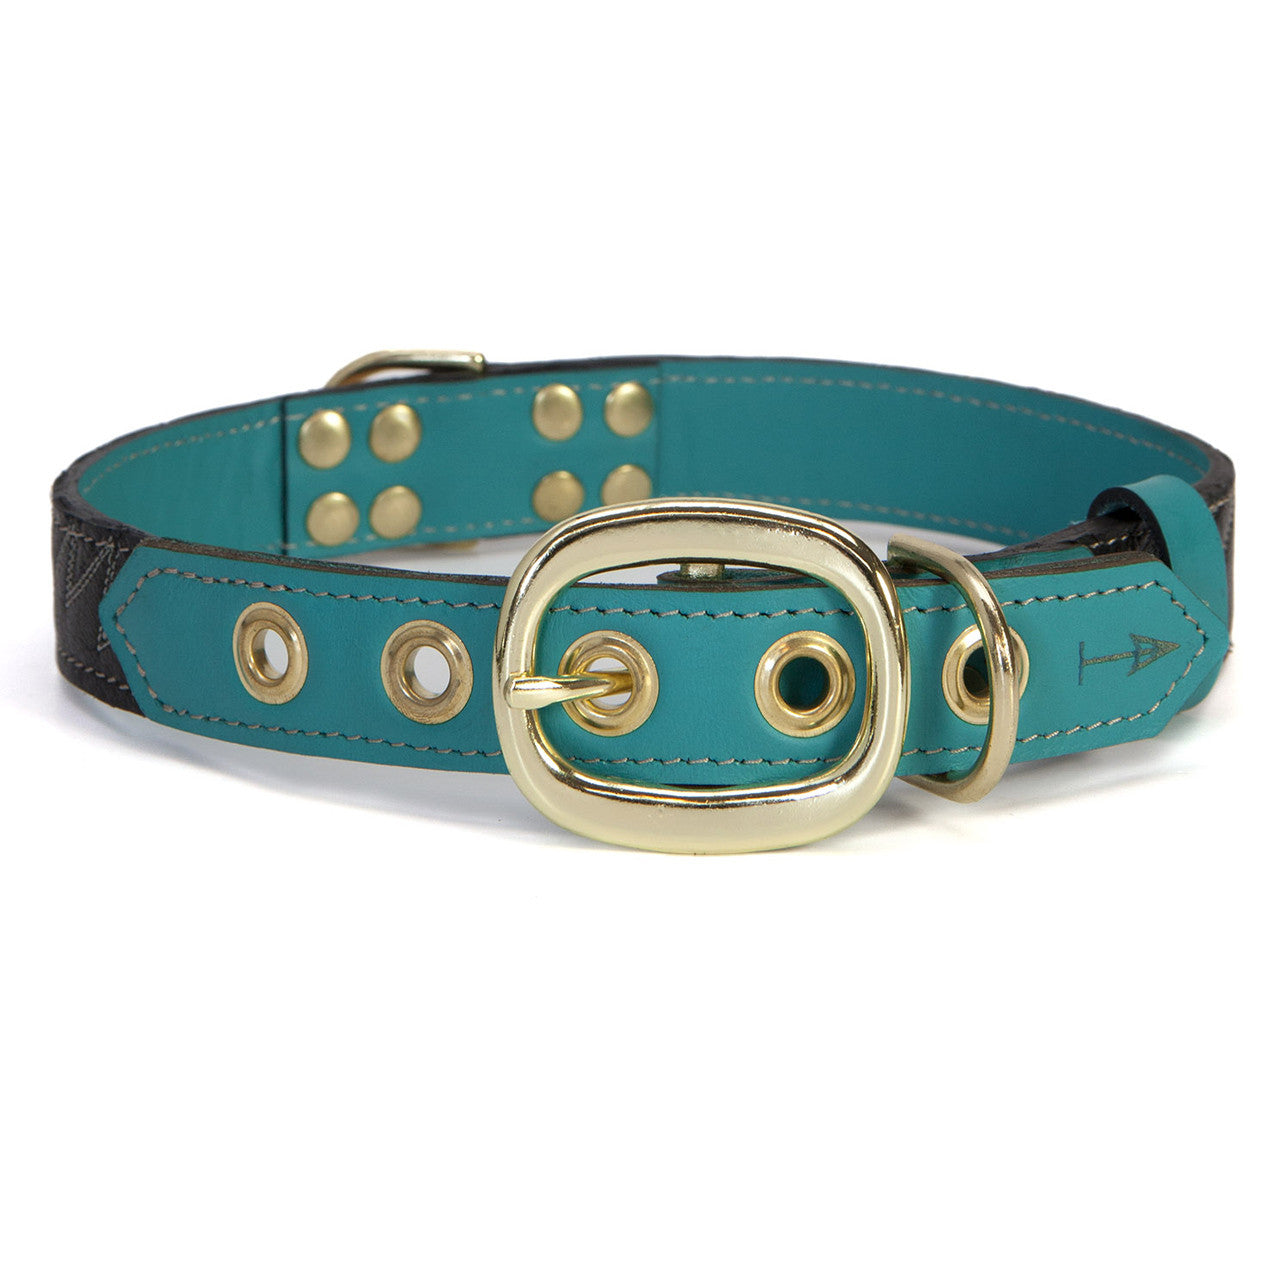 Turquoise Dog Collar with Black Leather + White Spike Stitching (back view)